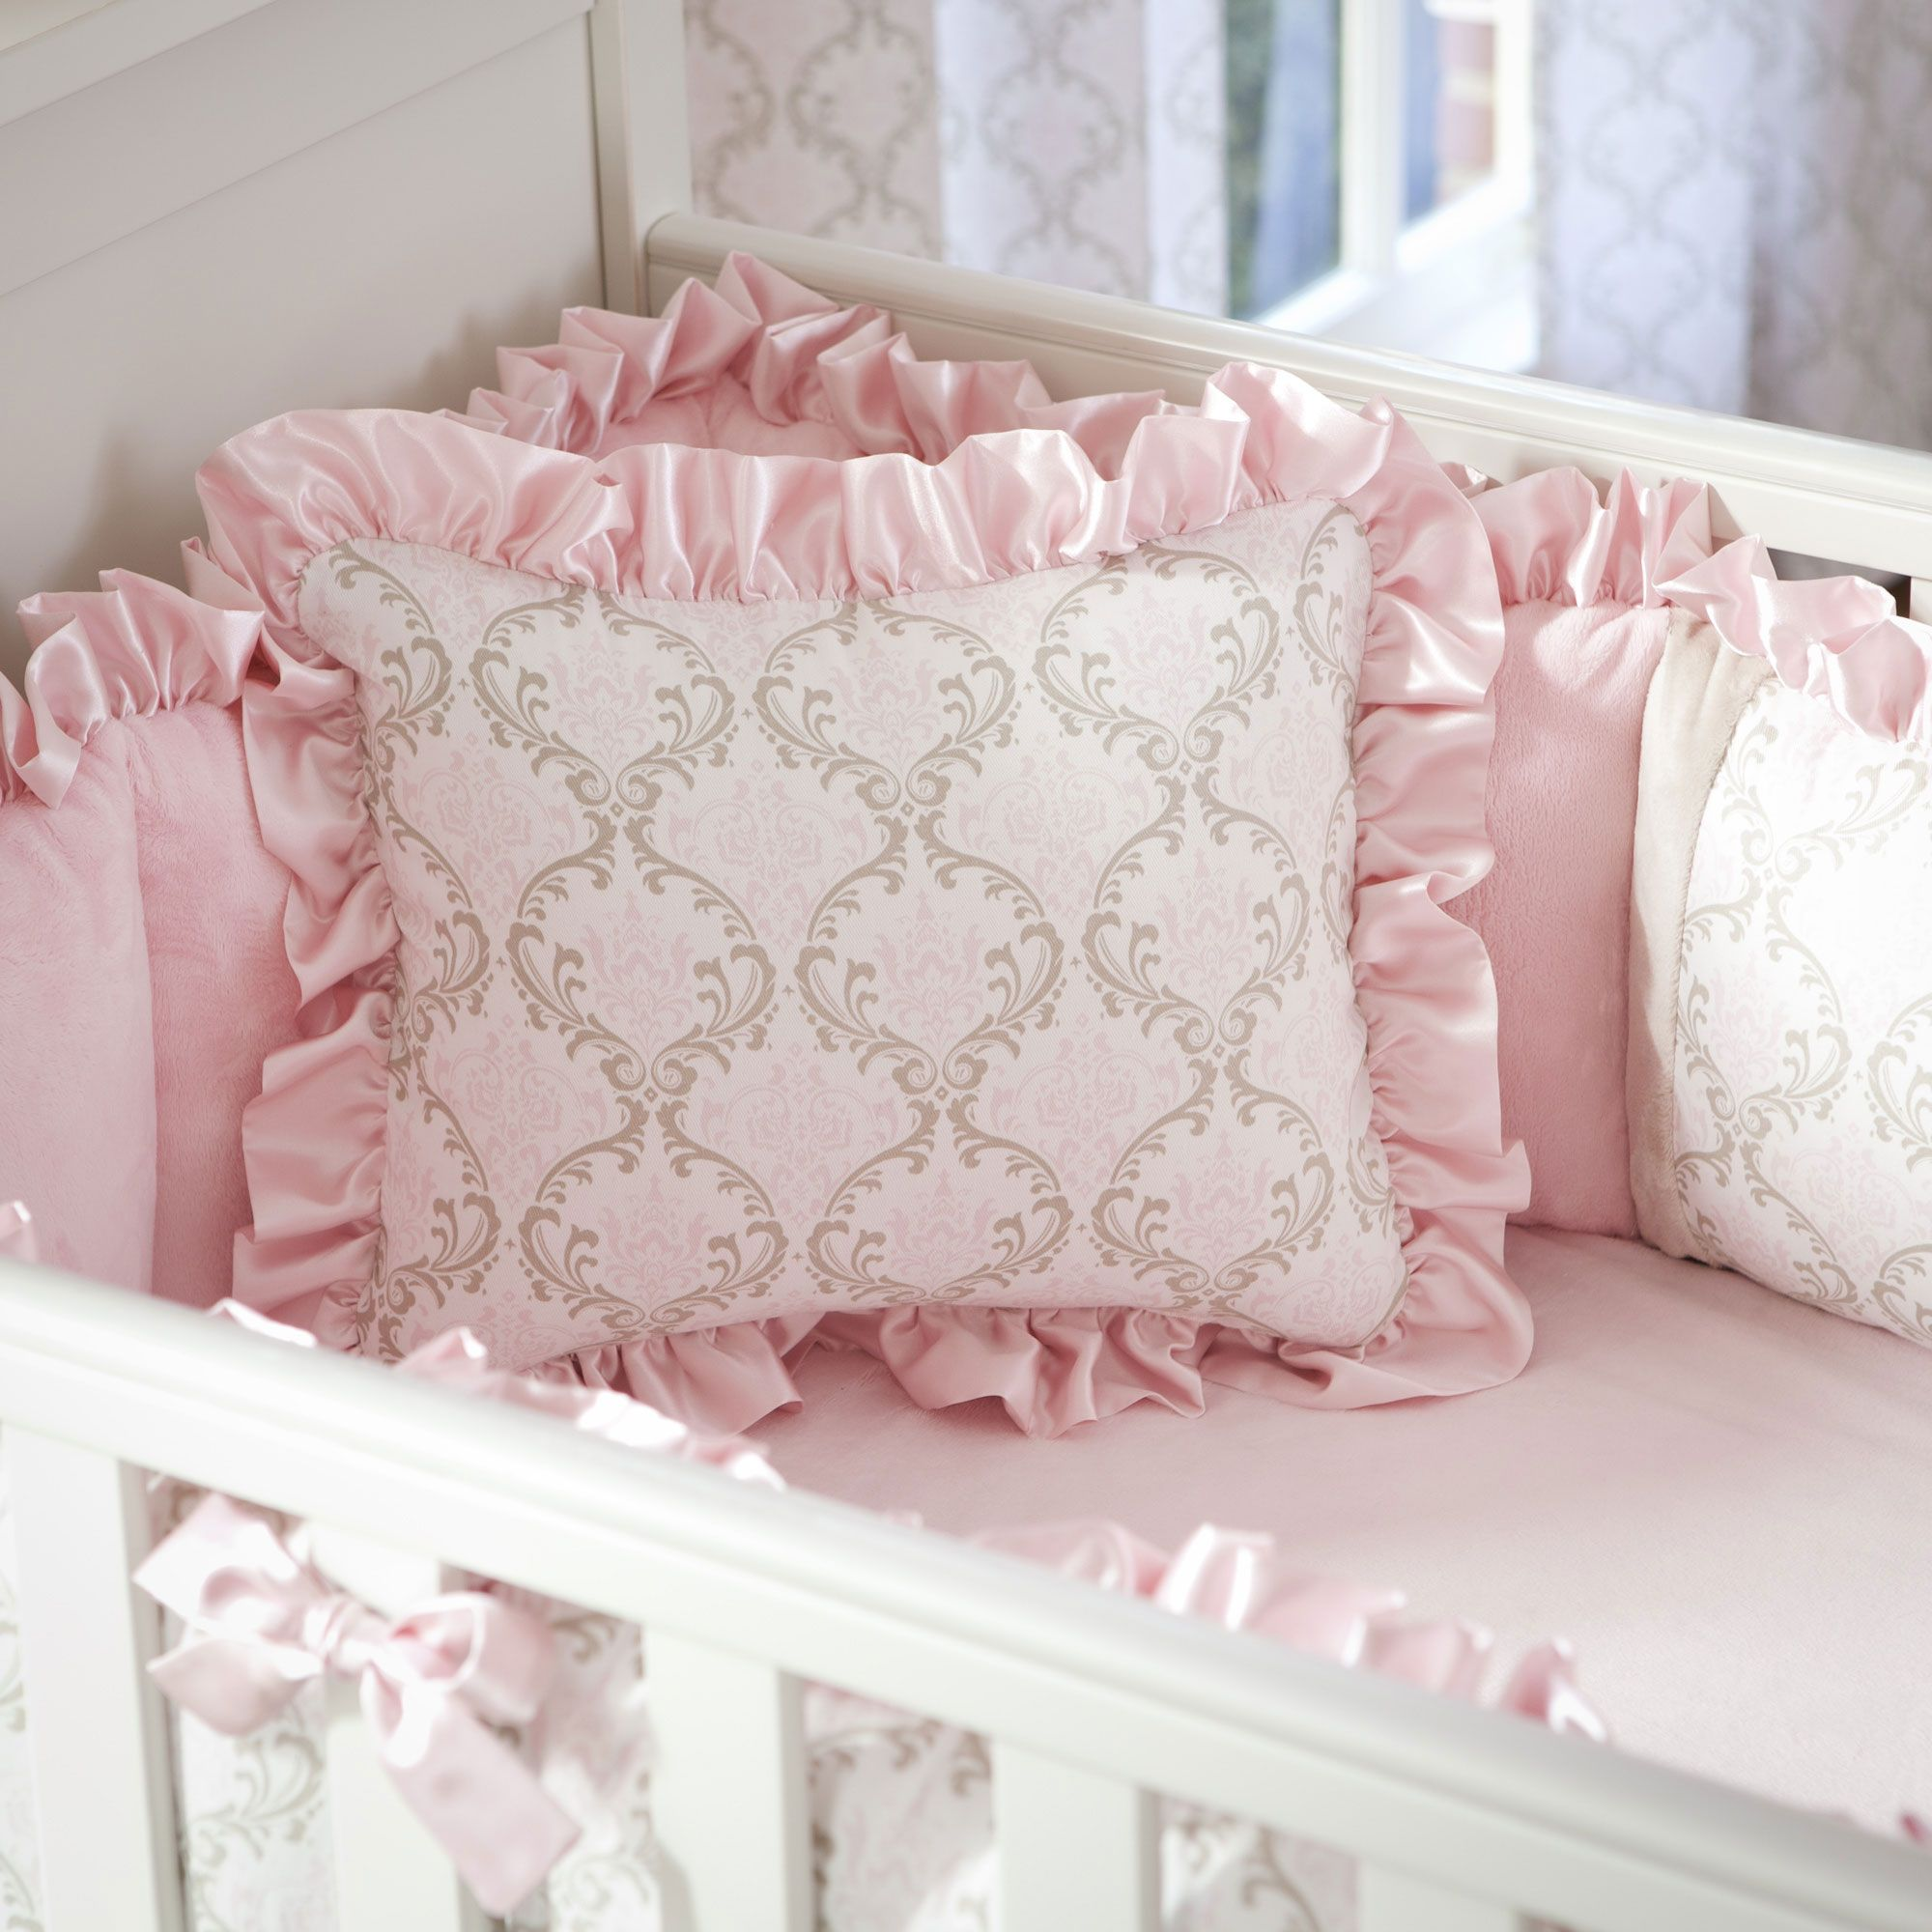 Pink And Taupe Damask Decorative Pillow Rectangular Made With Care In The Usa By Carousel Designs